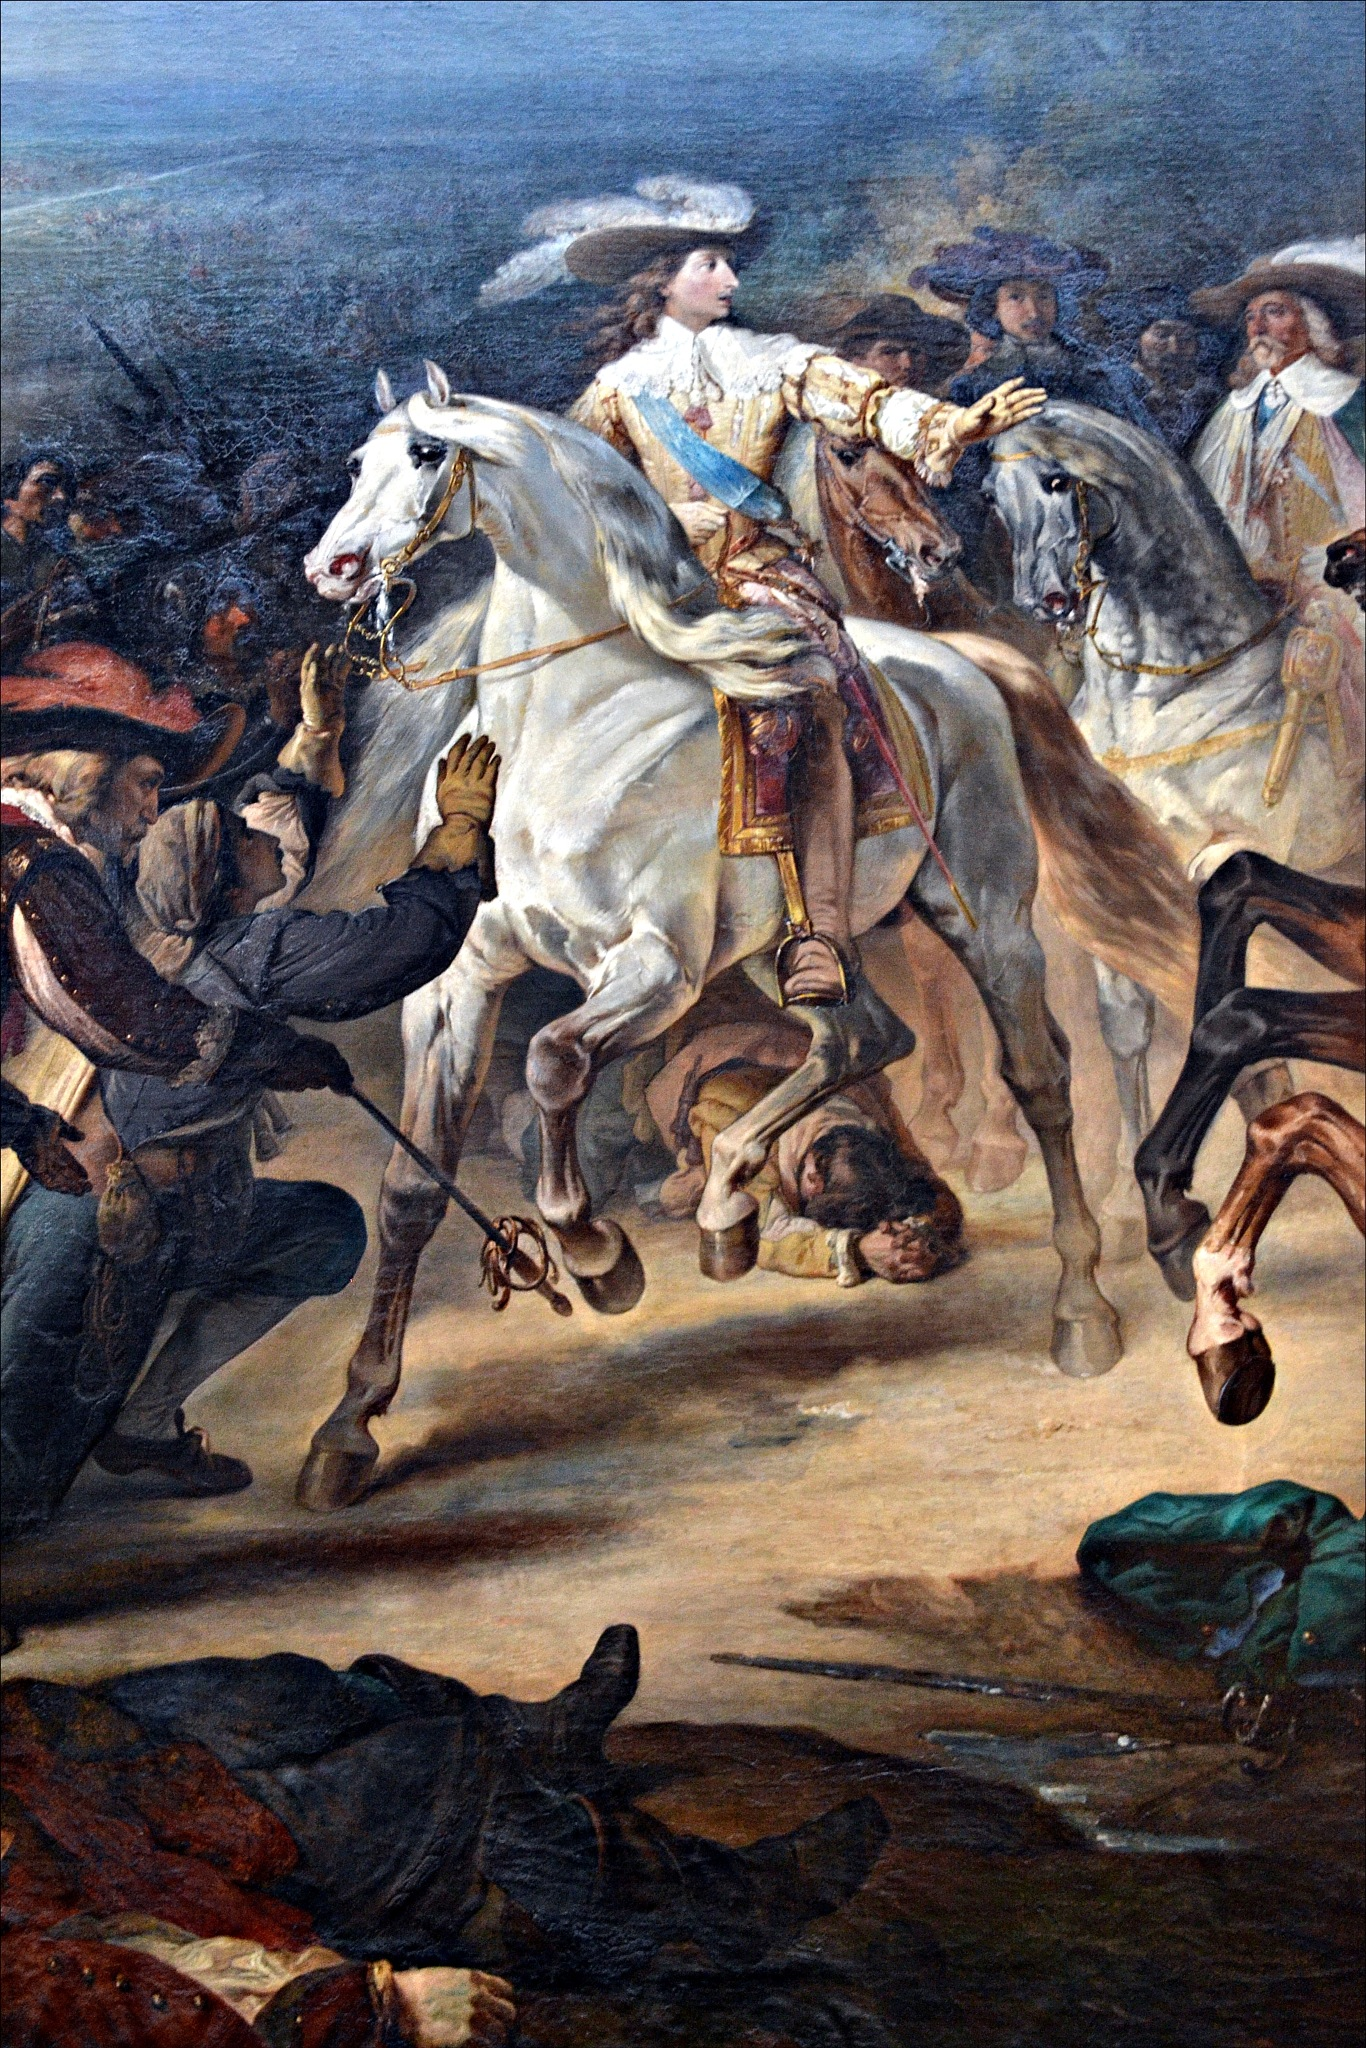 Detail of a painting on display at the Palace of Versailles by Fred Matos